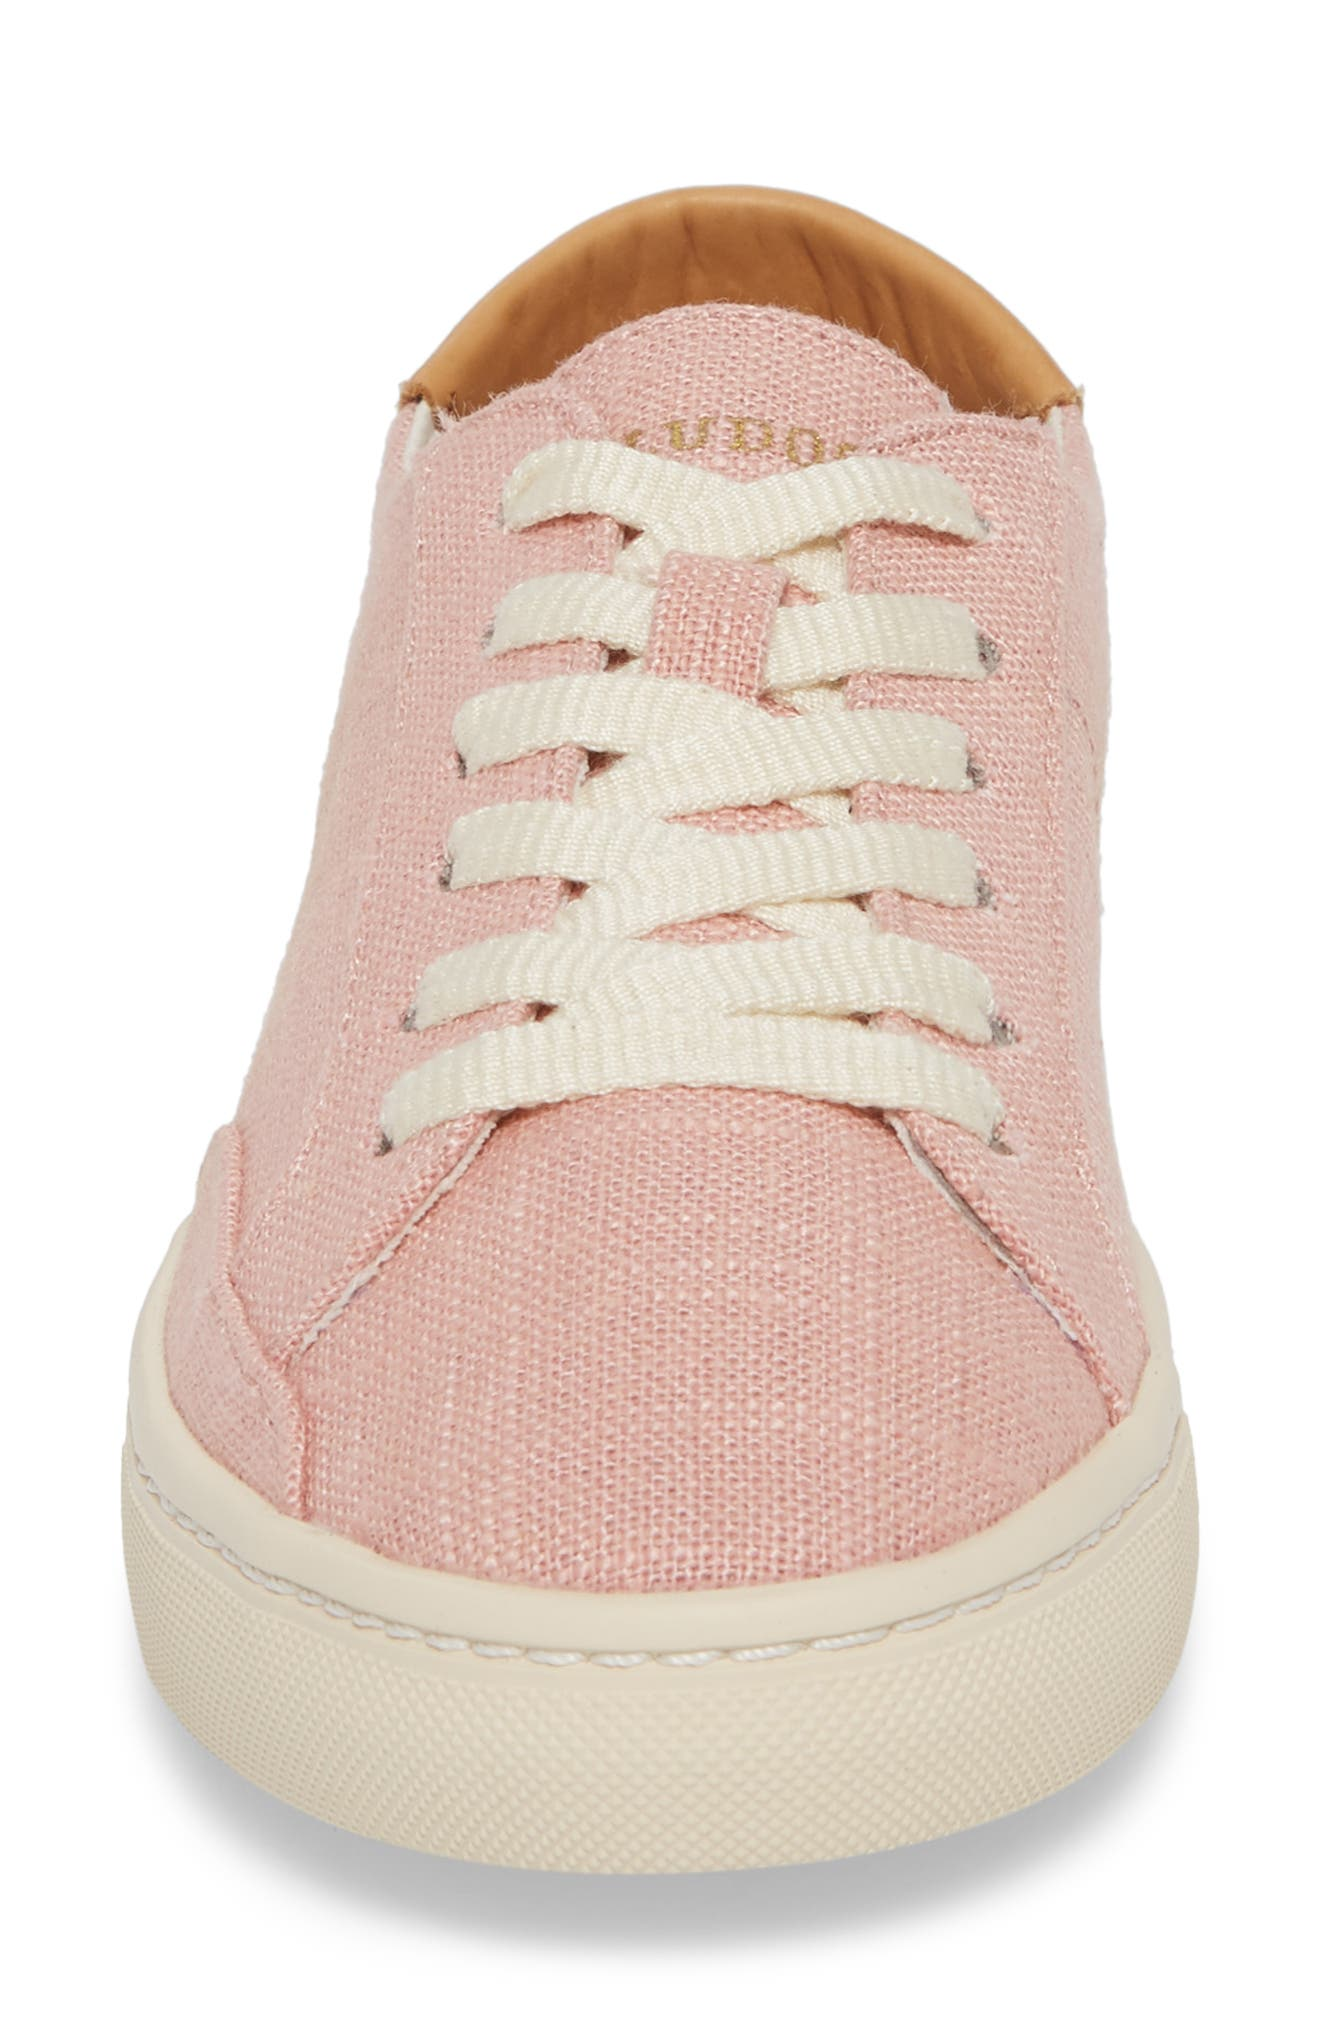 Ibiza Sneaker,                             Alternate thumbnail 4, color,                             Dusty Rose Fabric